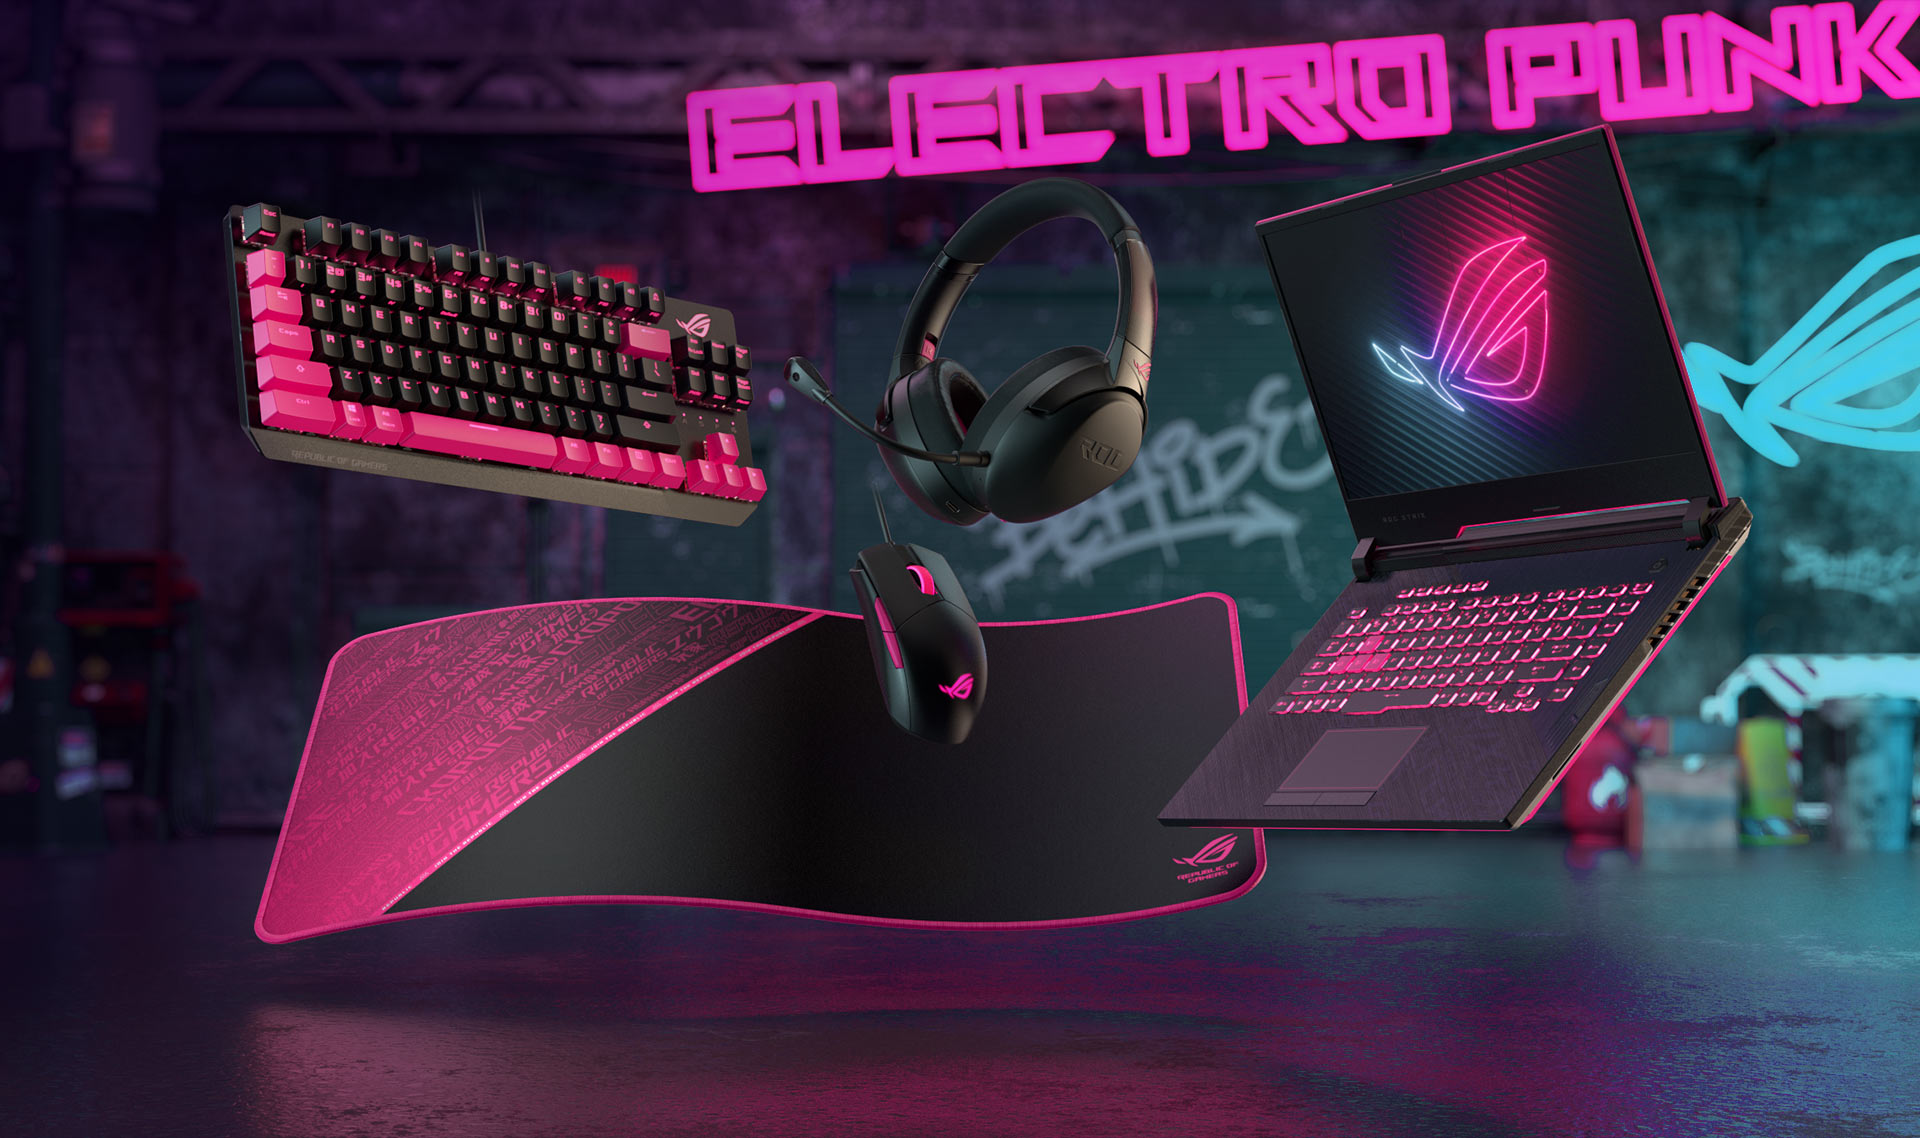 ROG Electro Punk products